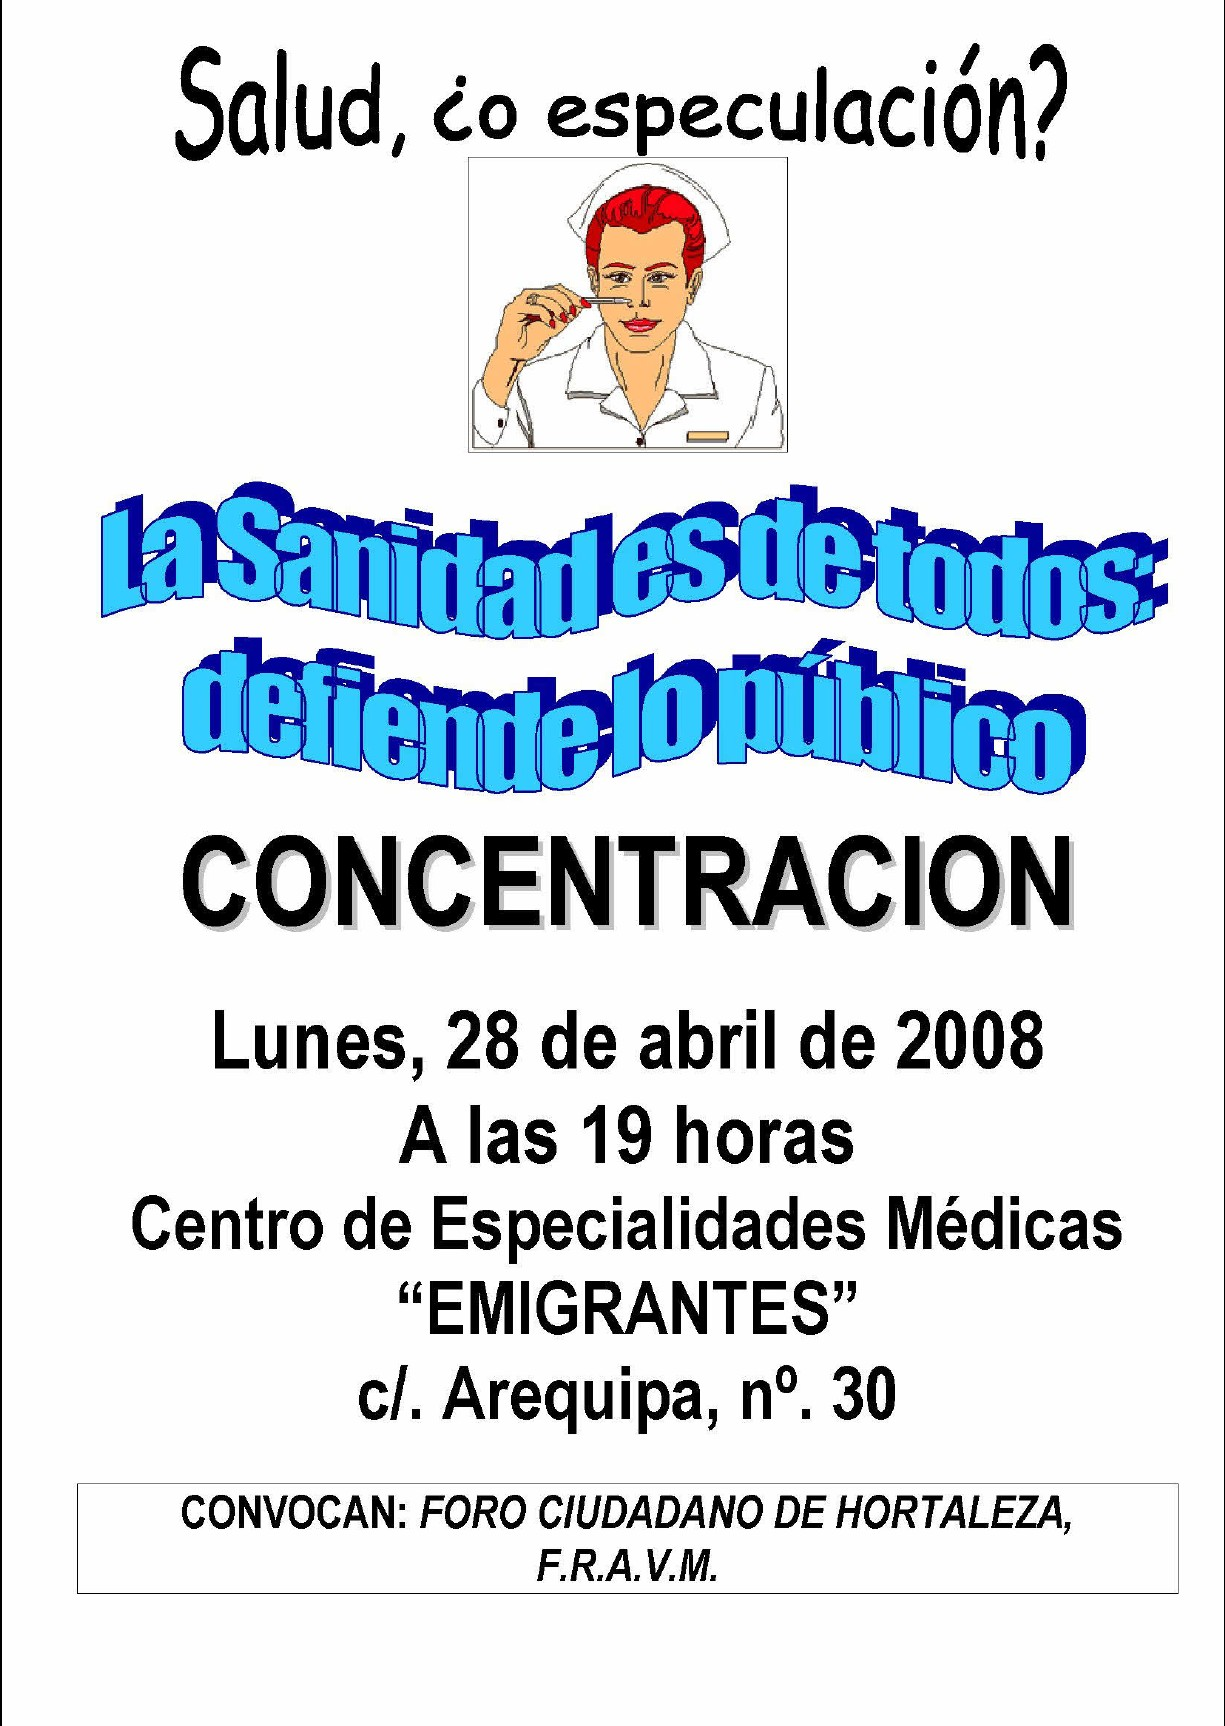 Concentracin da 28 de abril en el C.E.P. de Emigrantes (rea 4): La Sanidad es de todos, defiende lo pblico.